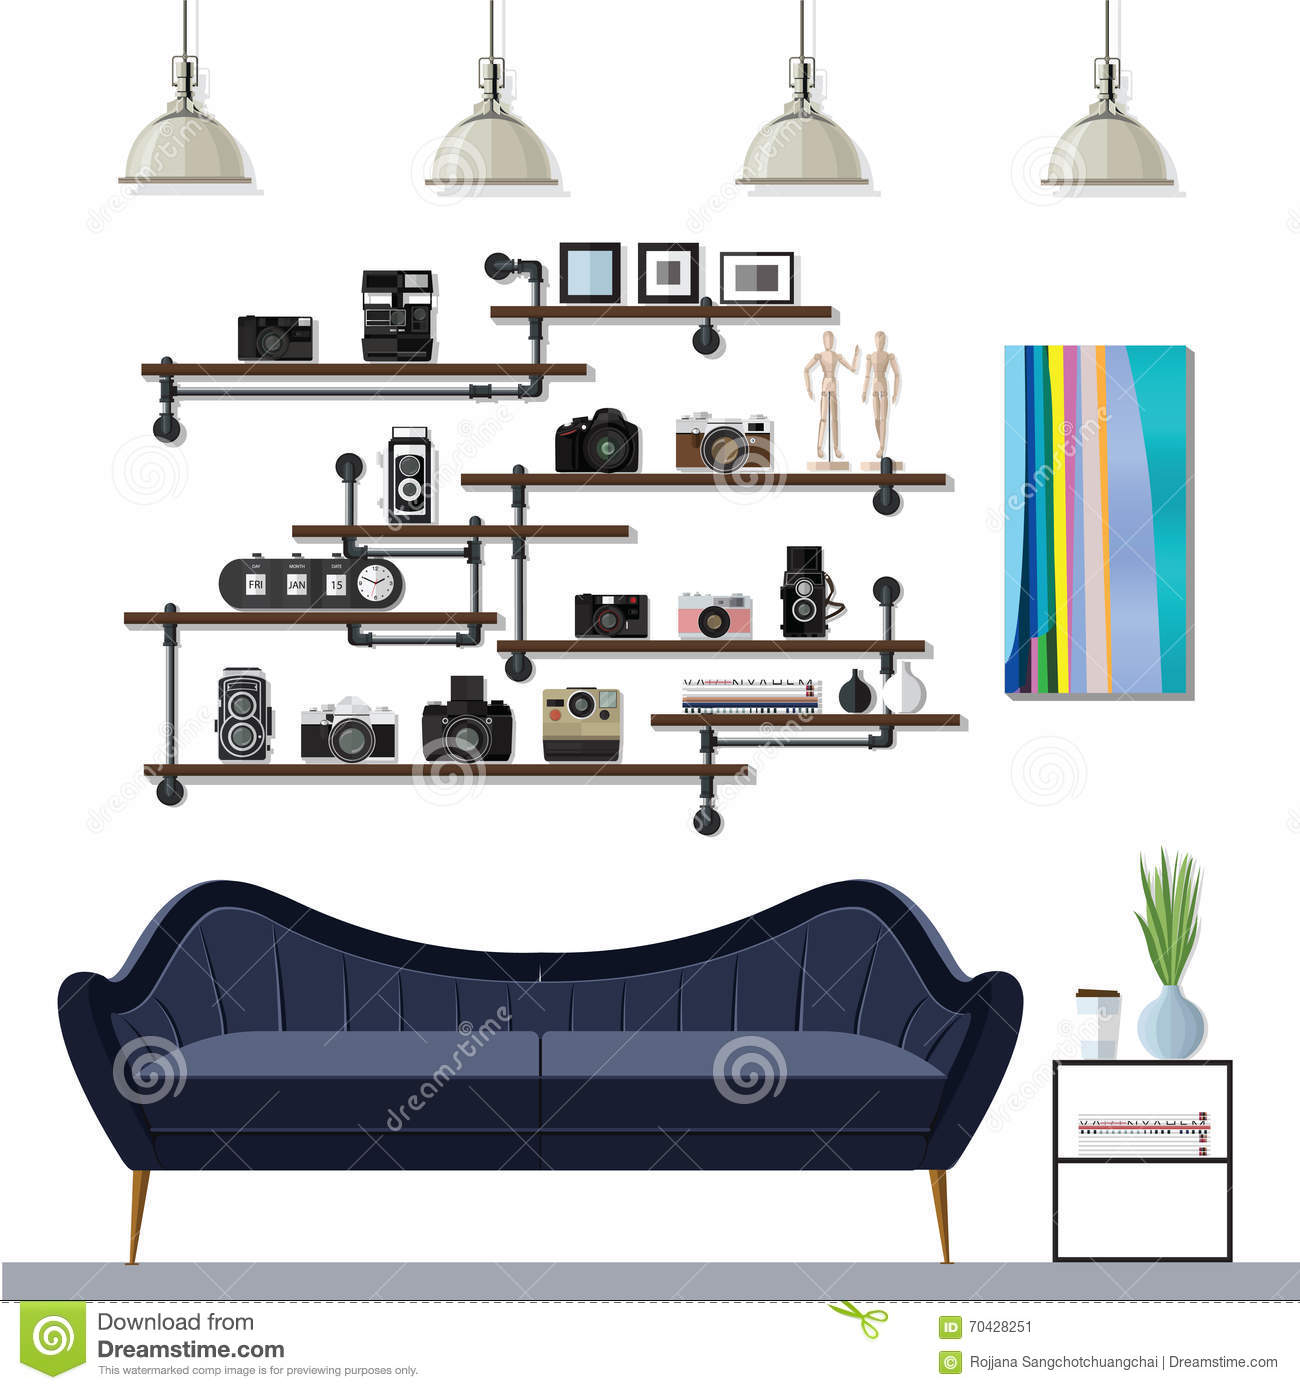 Small living room stock vector image 70428251 for Room design vector